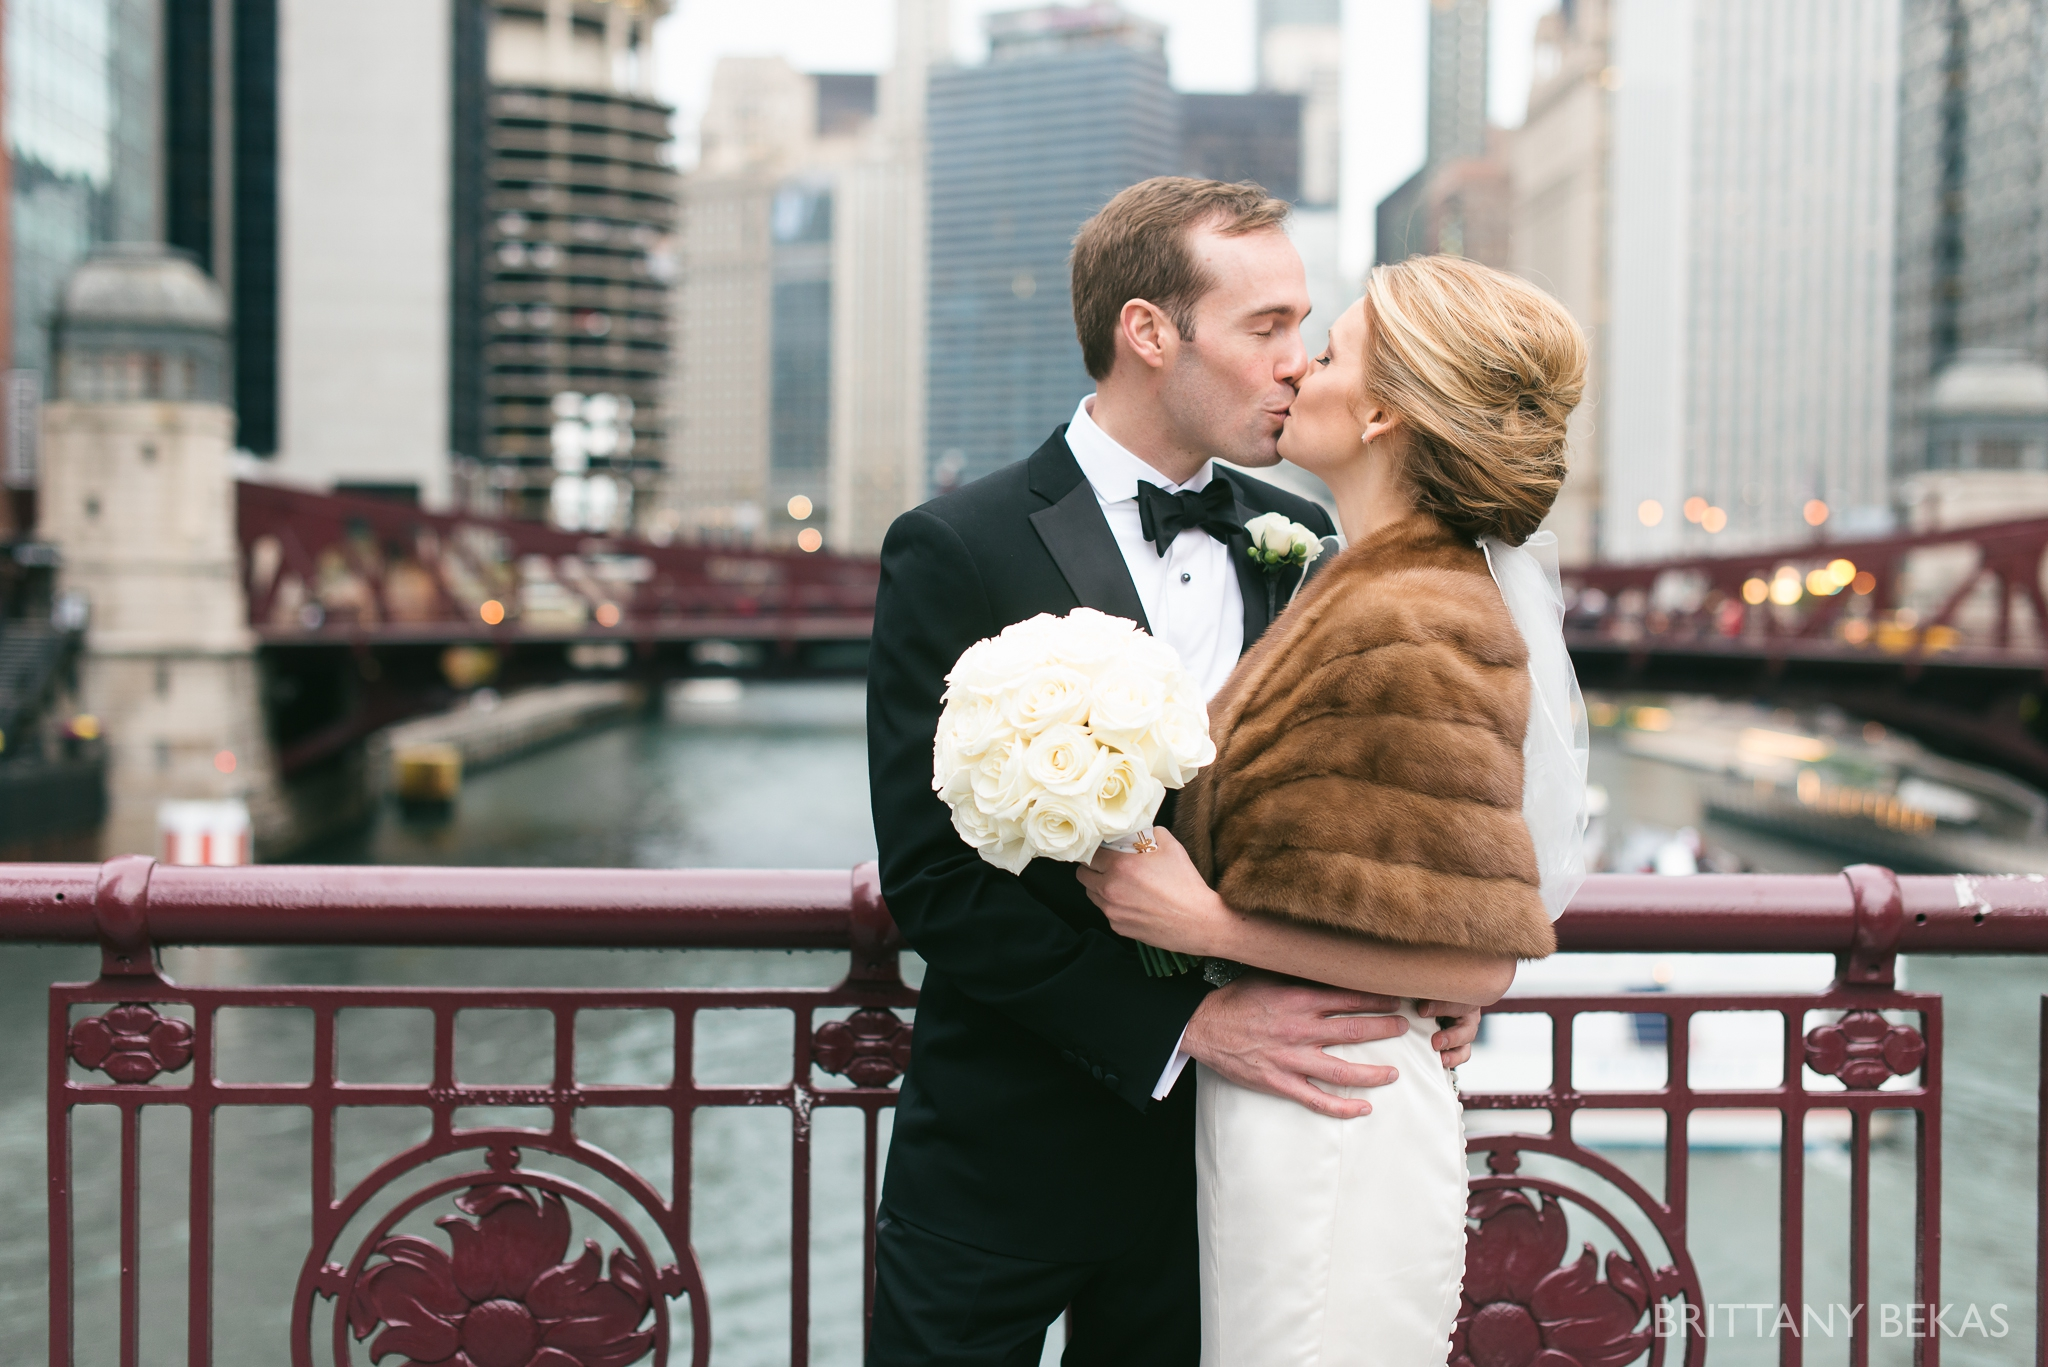 Chicago Wedding Hotel Allegro Wedding Photos - Brittany Bekas Photography_0026